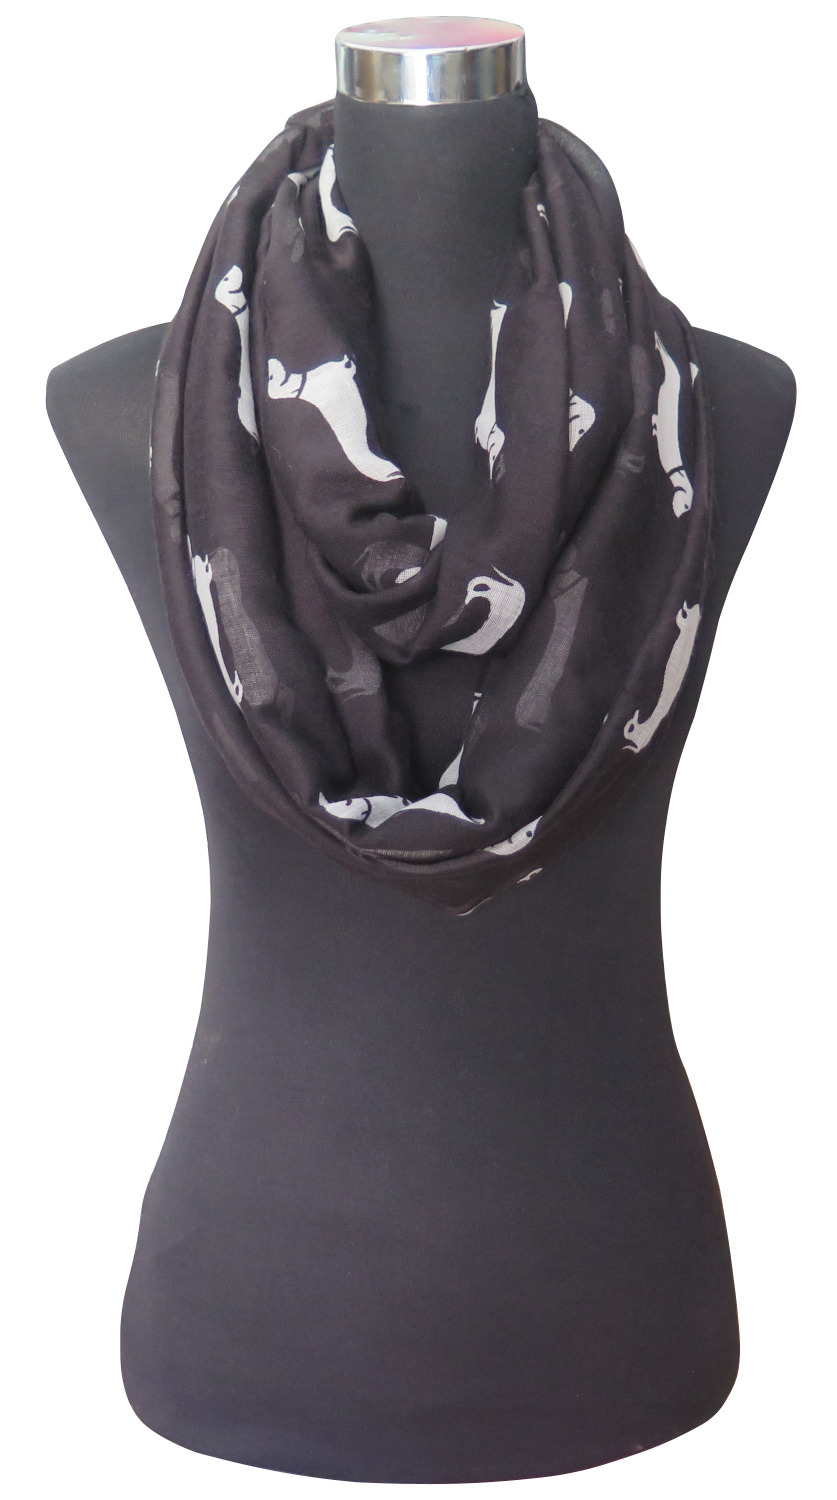 10pcs lot Dachshund Doxie Dog Animal Print Women s Infinity Loop Scarf Snood Accessories